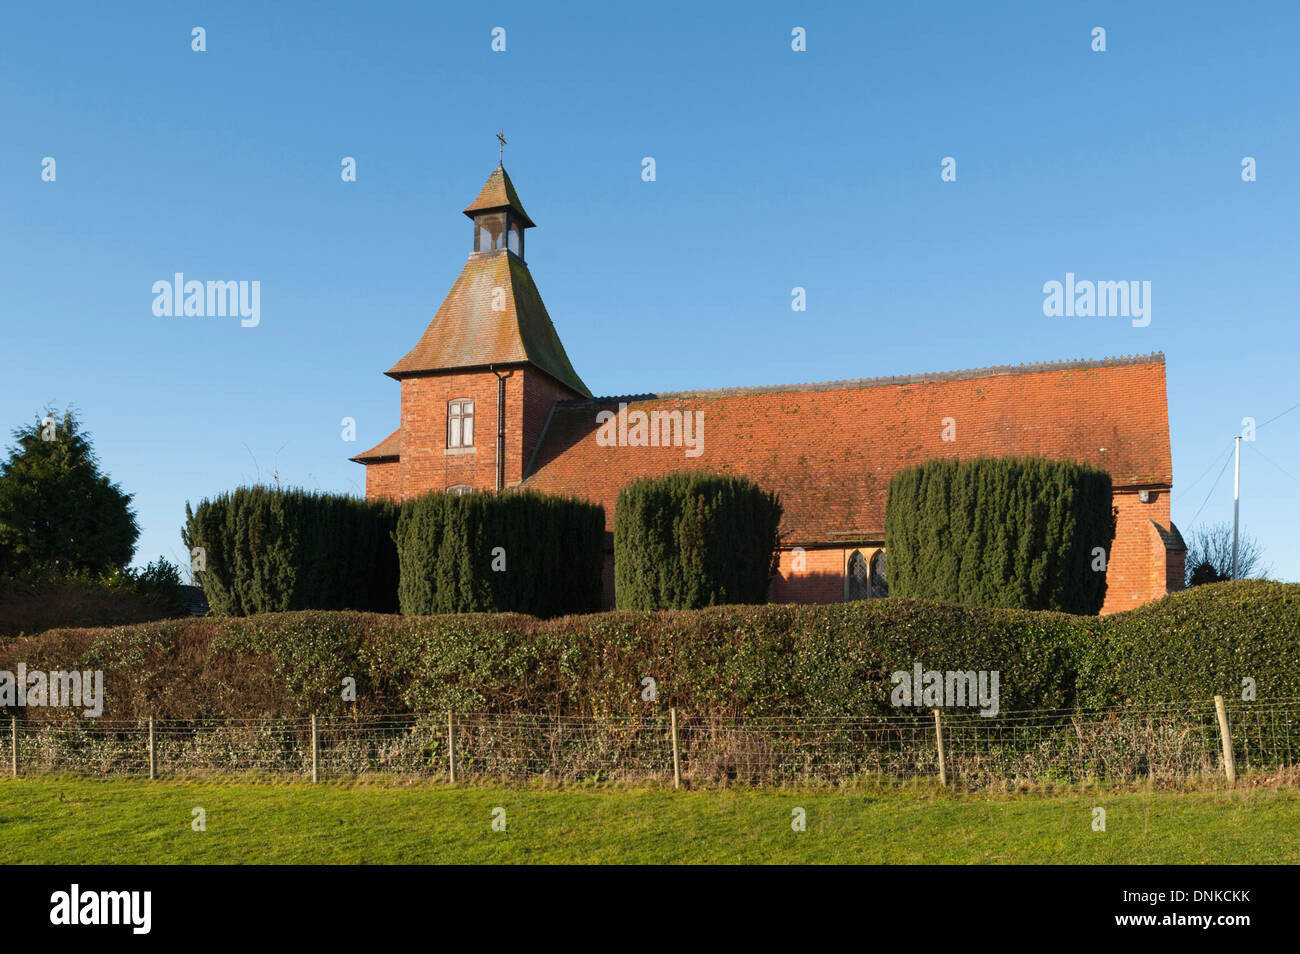 St. Edmund's Anglican Church, Thurlaston, West Leicestershire, England, UK - Stock Image